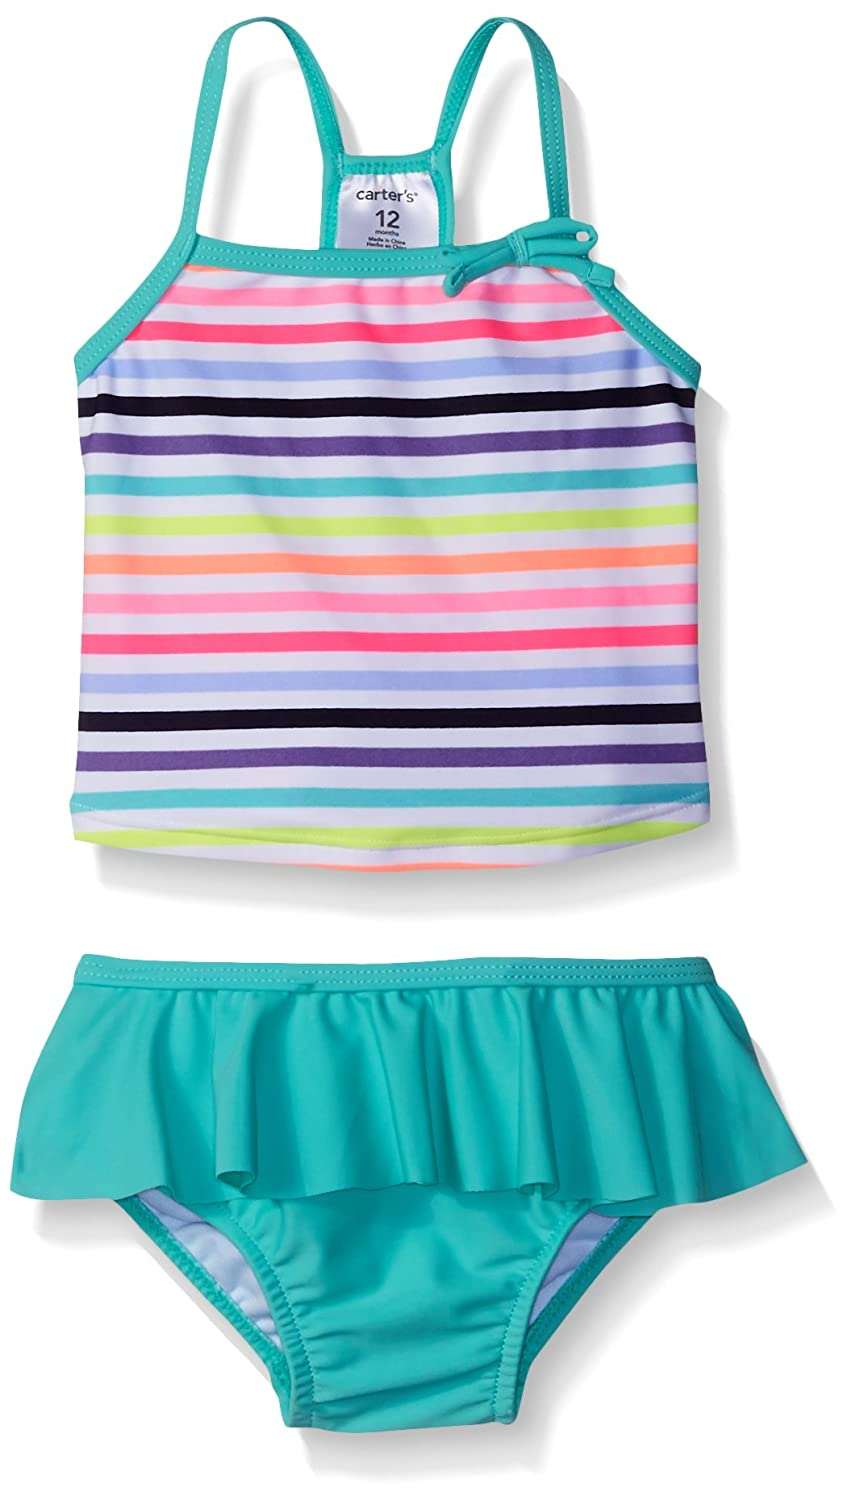 Carter's Baby Girls' Two Piece Striped Tankini with Skirt SC16507